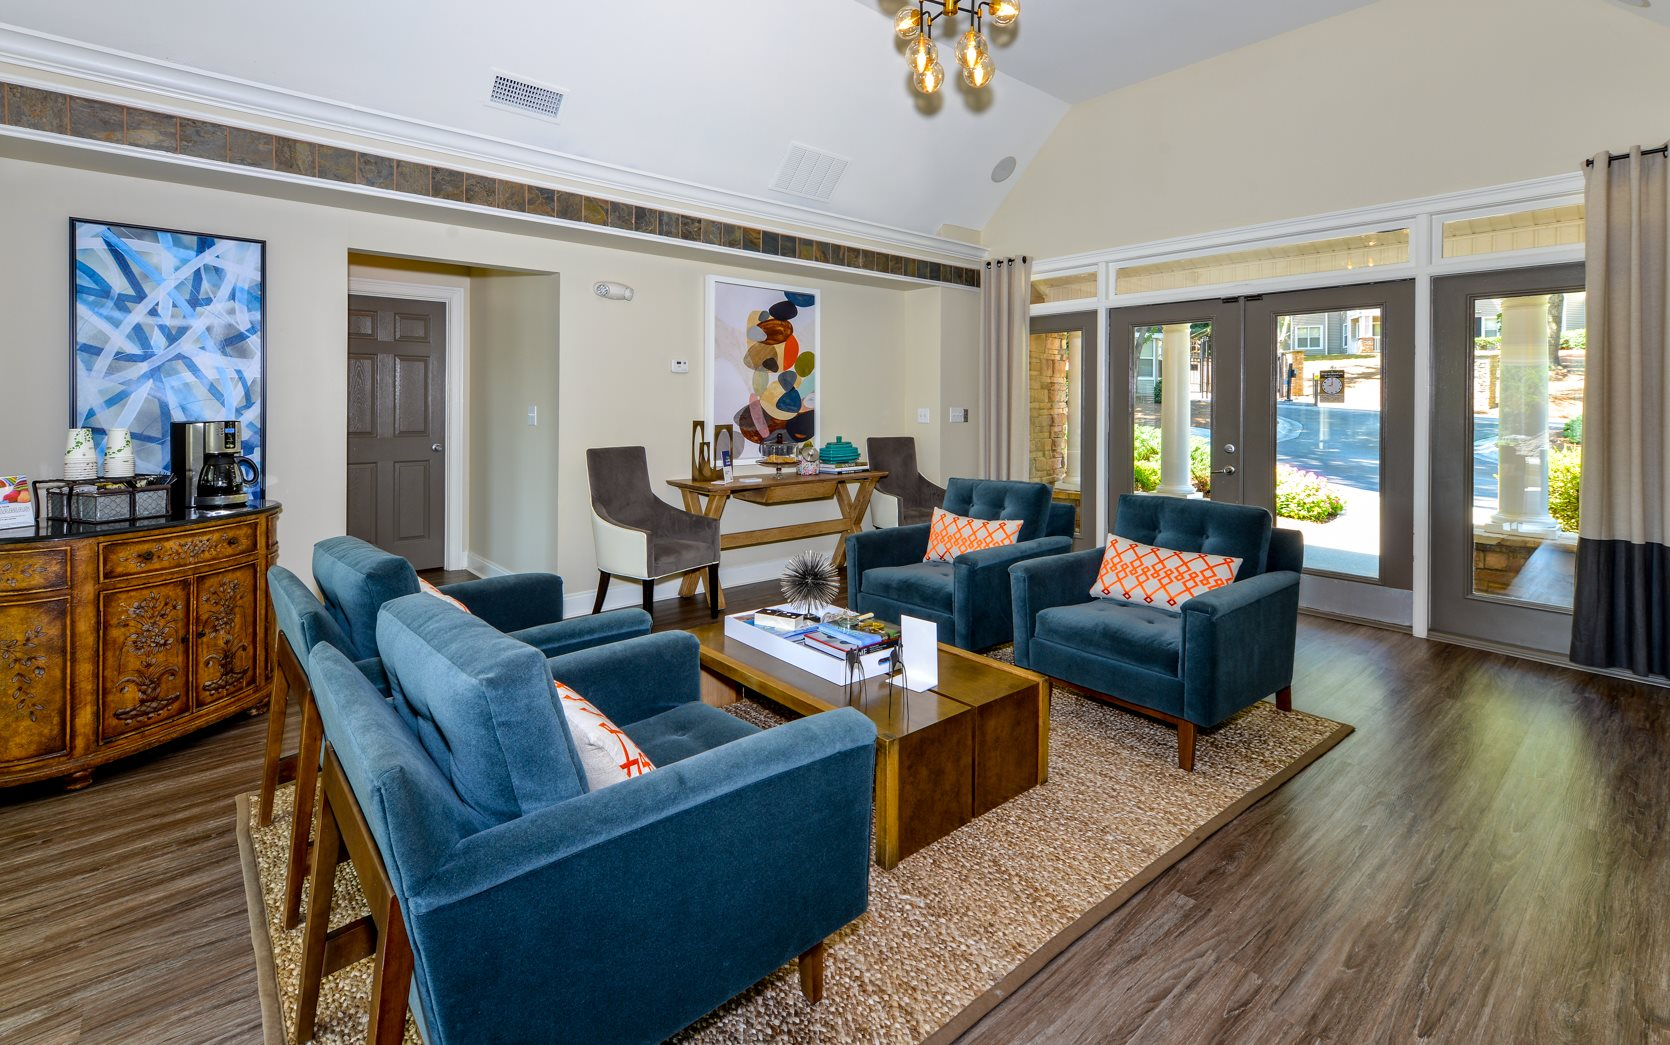 Luxurious Lobby Area With Community Seating And Coffee At Lakeside Arbor Place Apartments In Douglasville